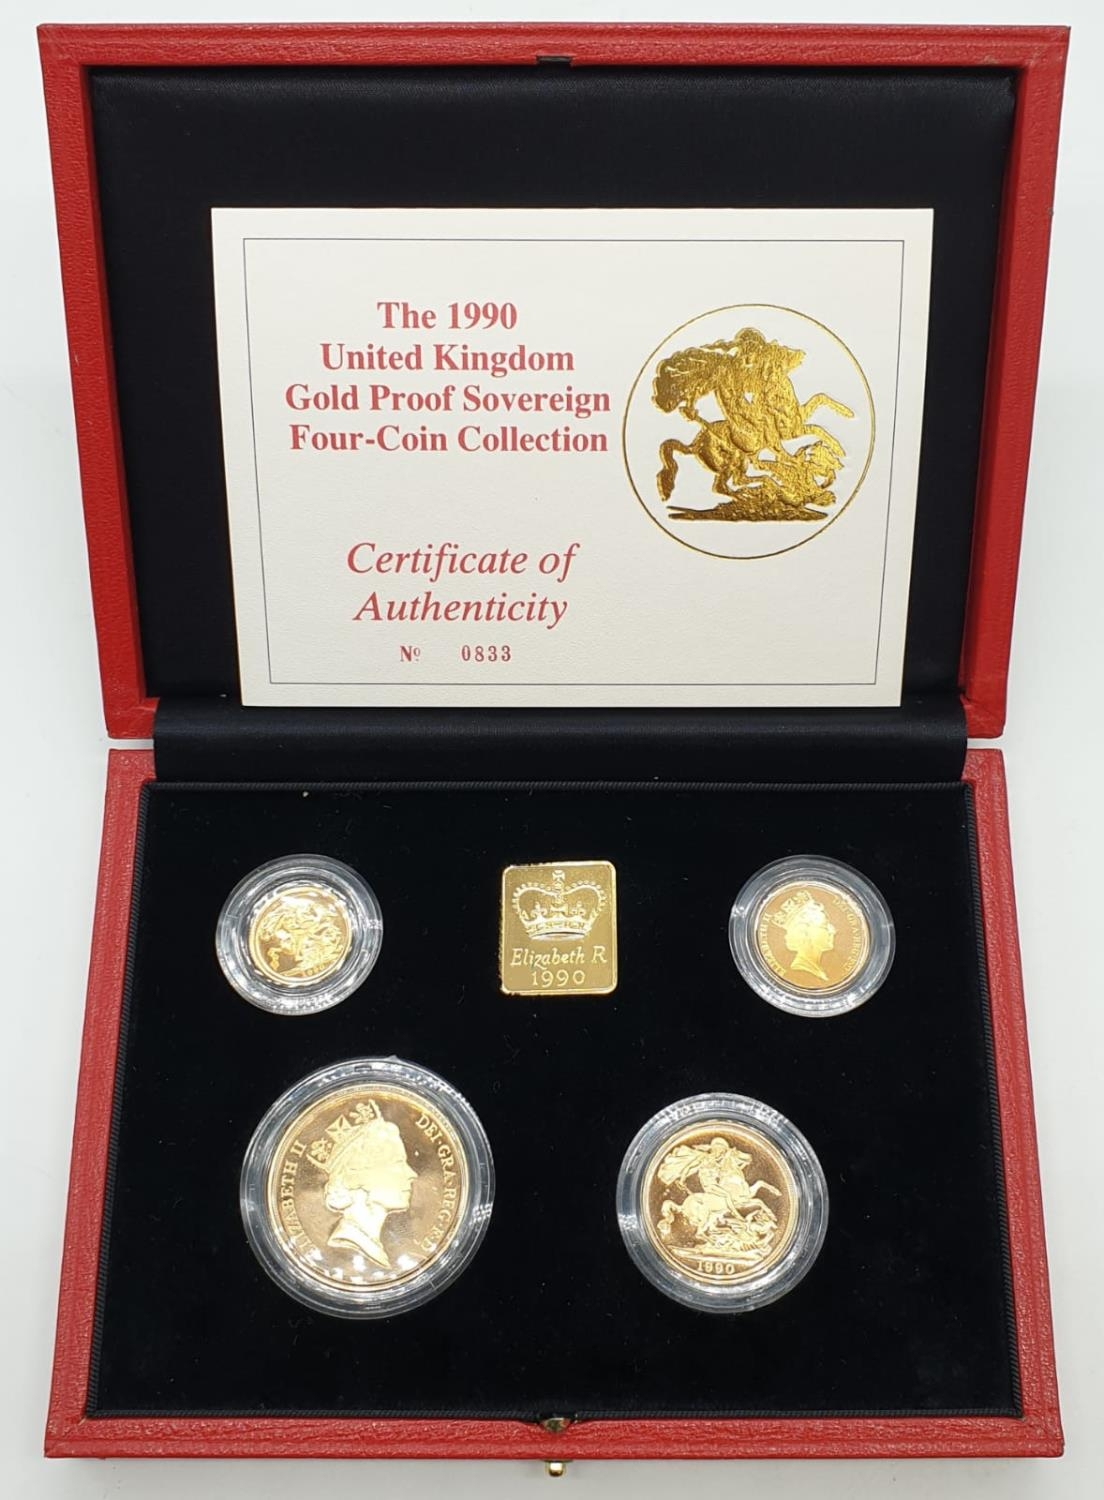 1990 UK GOLD PROOF SOVEREIGN 4 COIN COLLECTION TO INCLUDE A £5 COIN, A DOUBLE SOVEREIGN COIN, A